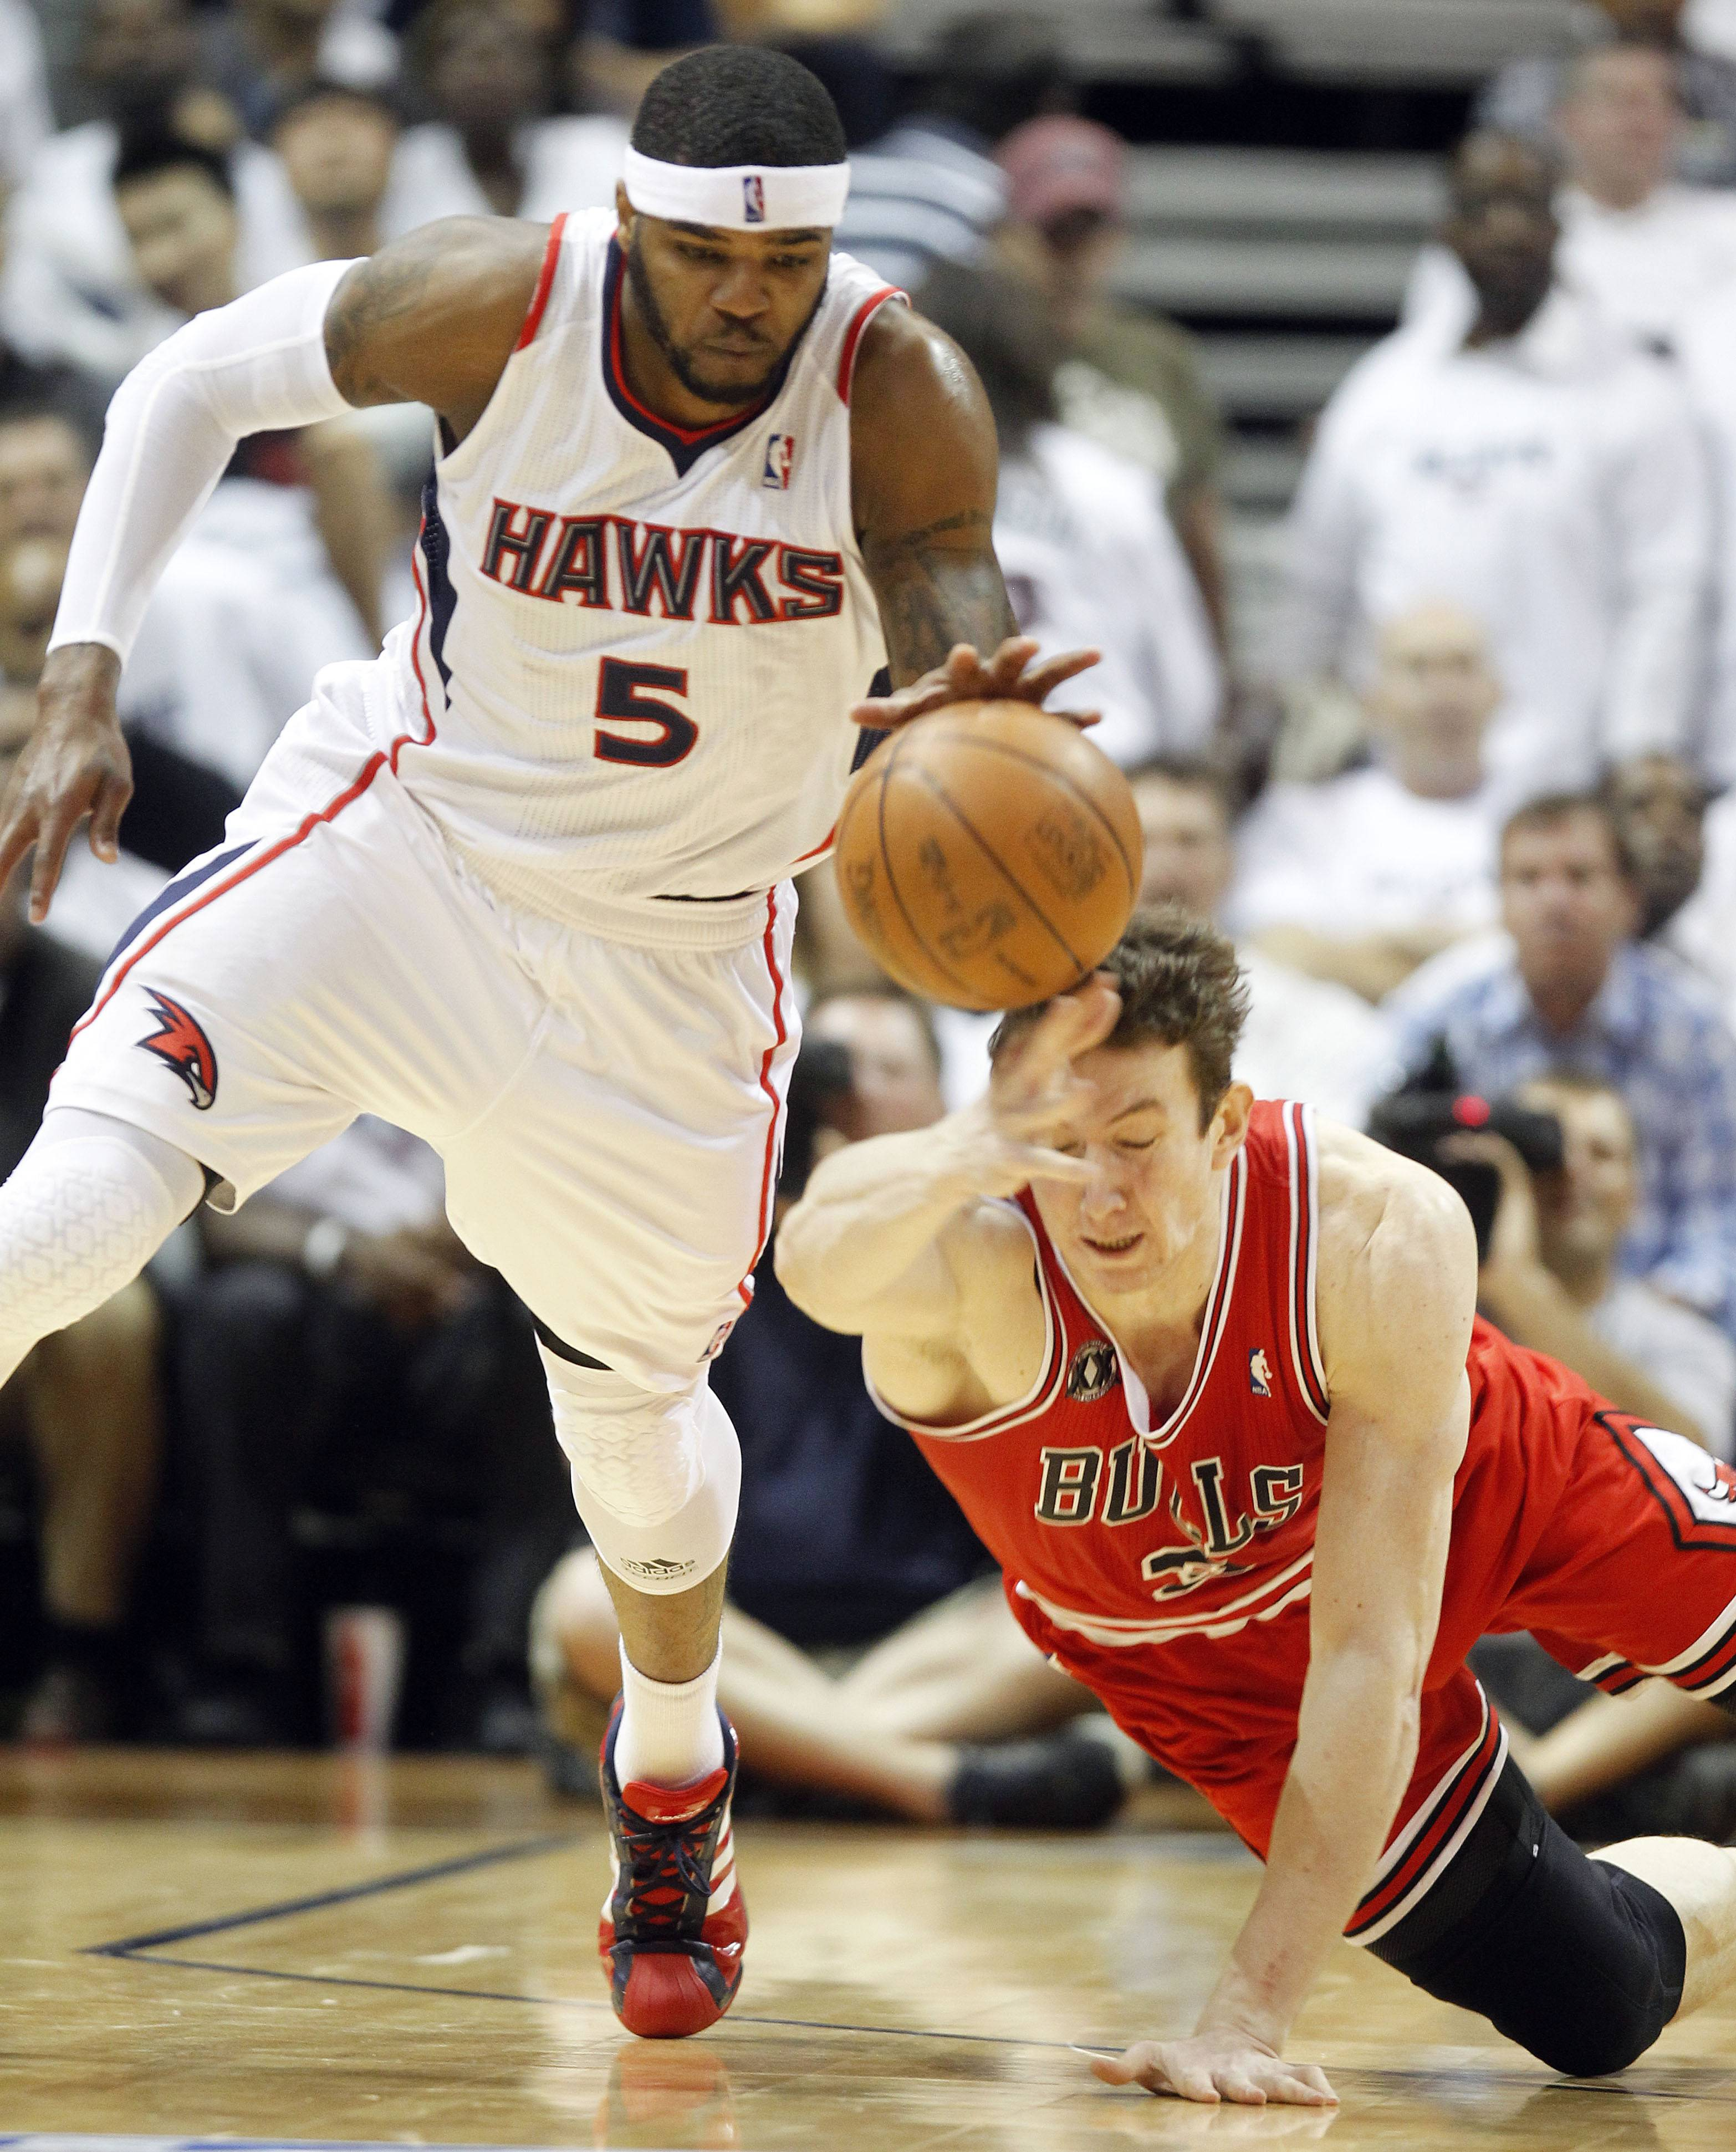 The Hawks' Josh Smith moves the ball up court as Bulls center Omer Asik falls to the court in the second quarter of Game 6 Thursday night.